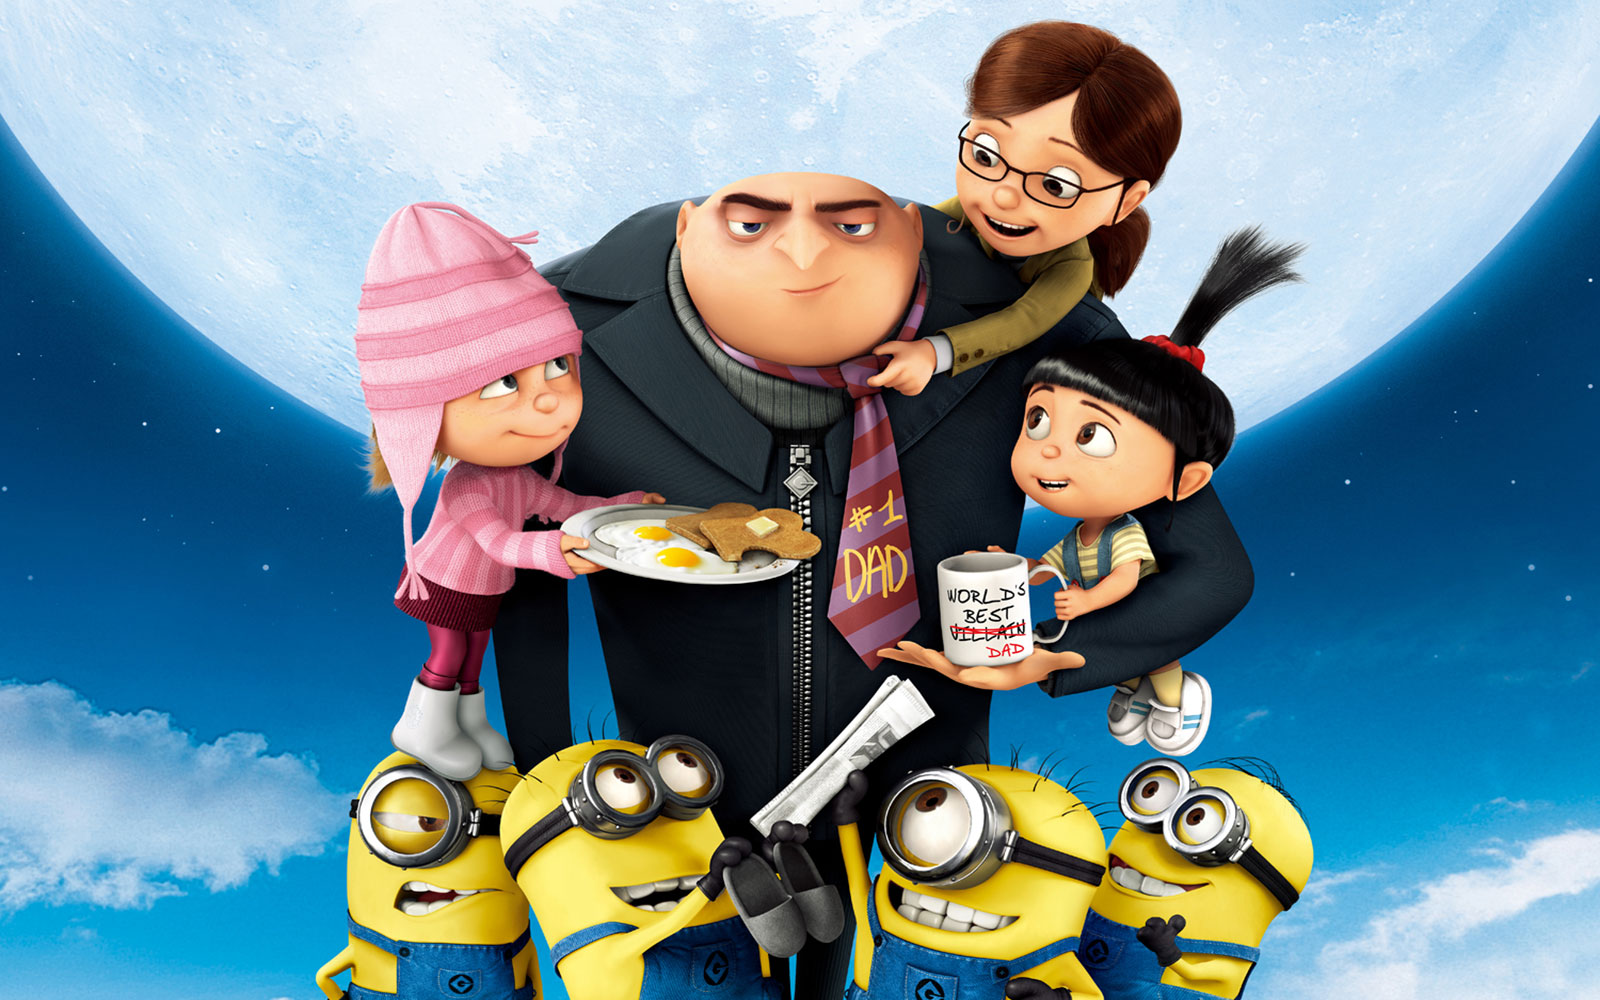 despicable me 2 animation movie 18 - Responsive